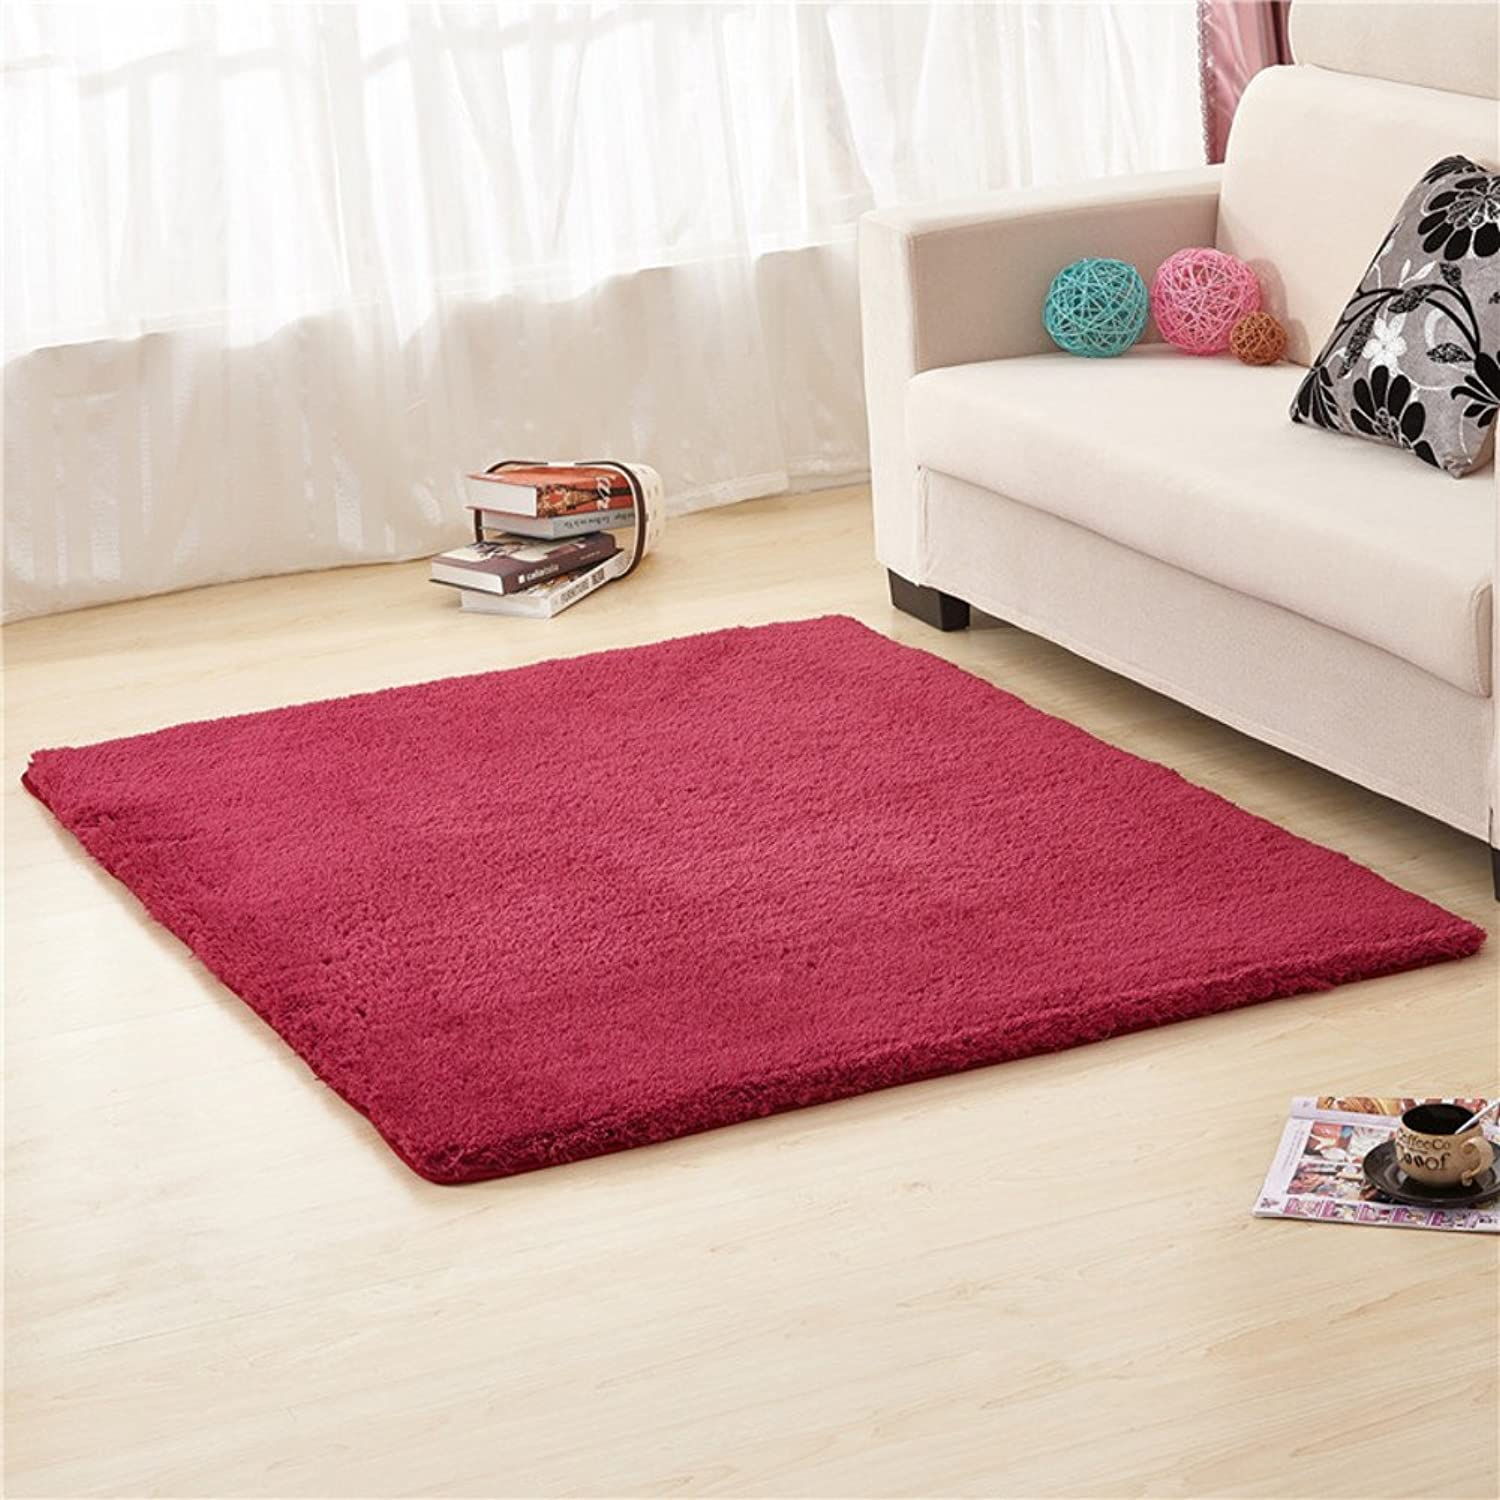 Doormats Kitchen Bathroom Water-Absorption Anti-Skid mat Bedroom Blanket for Bedroom -E 100x200cm(39x79inch)